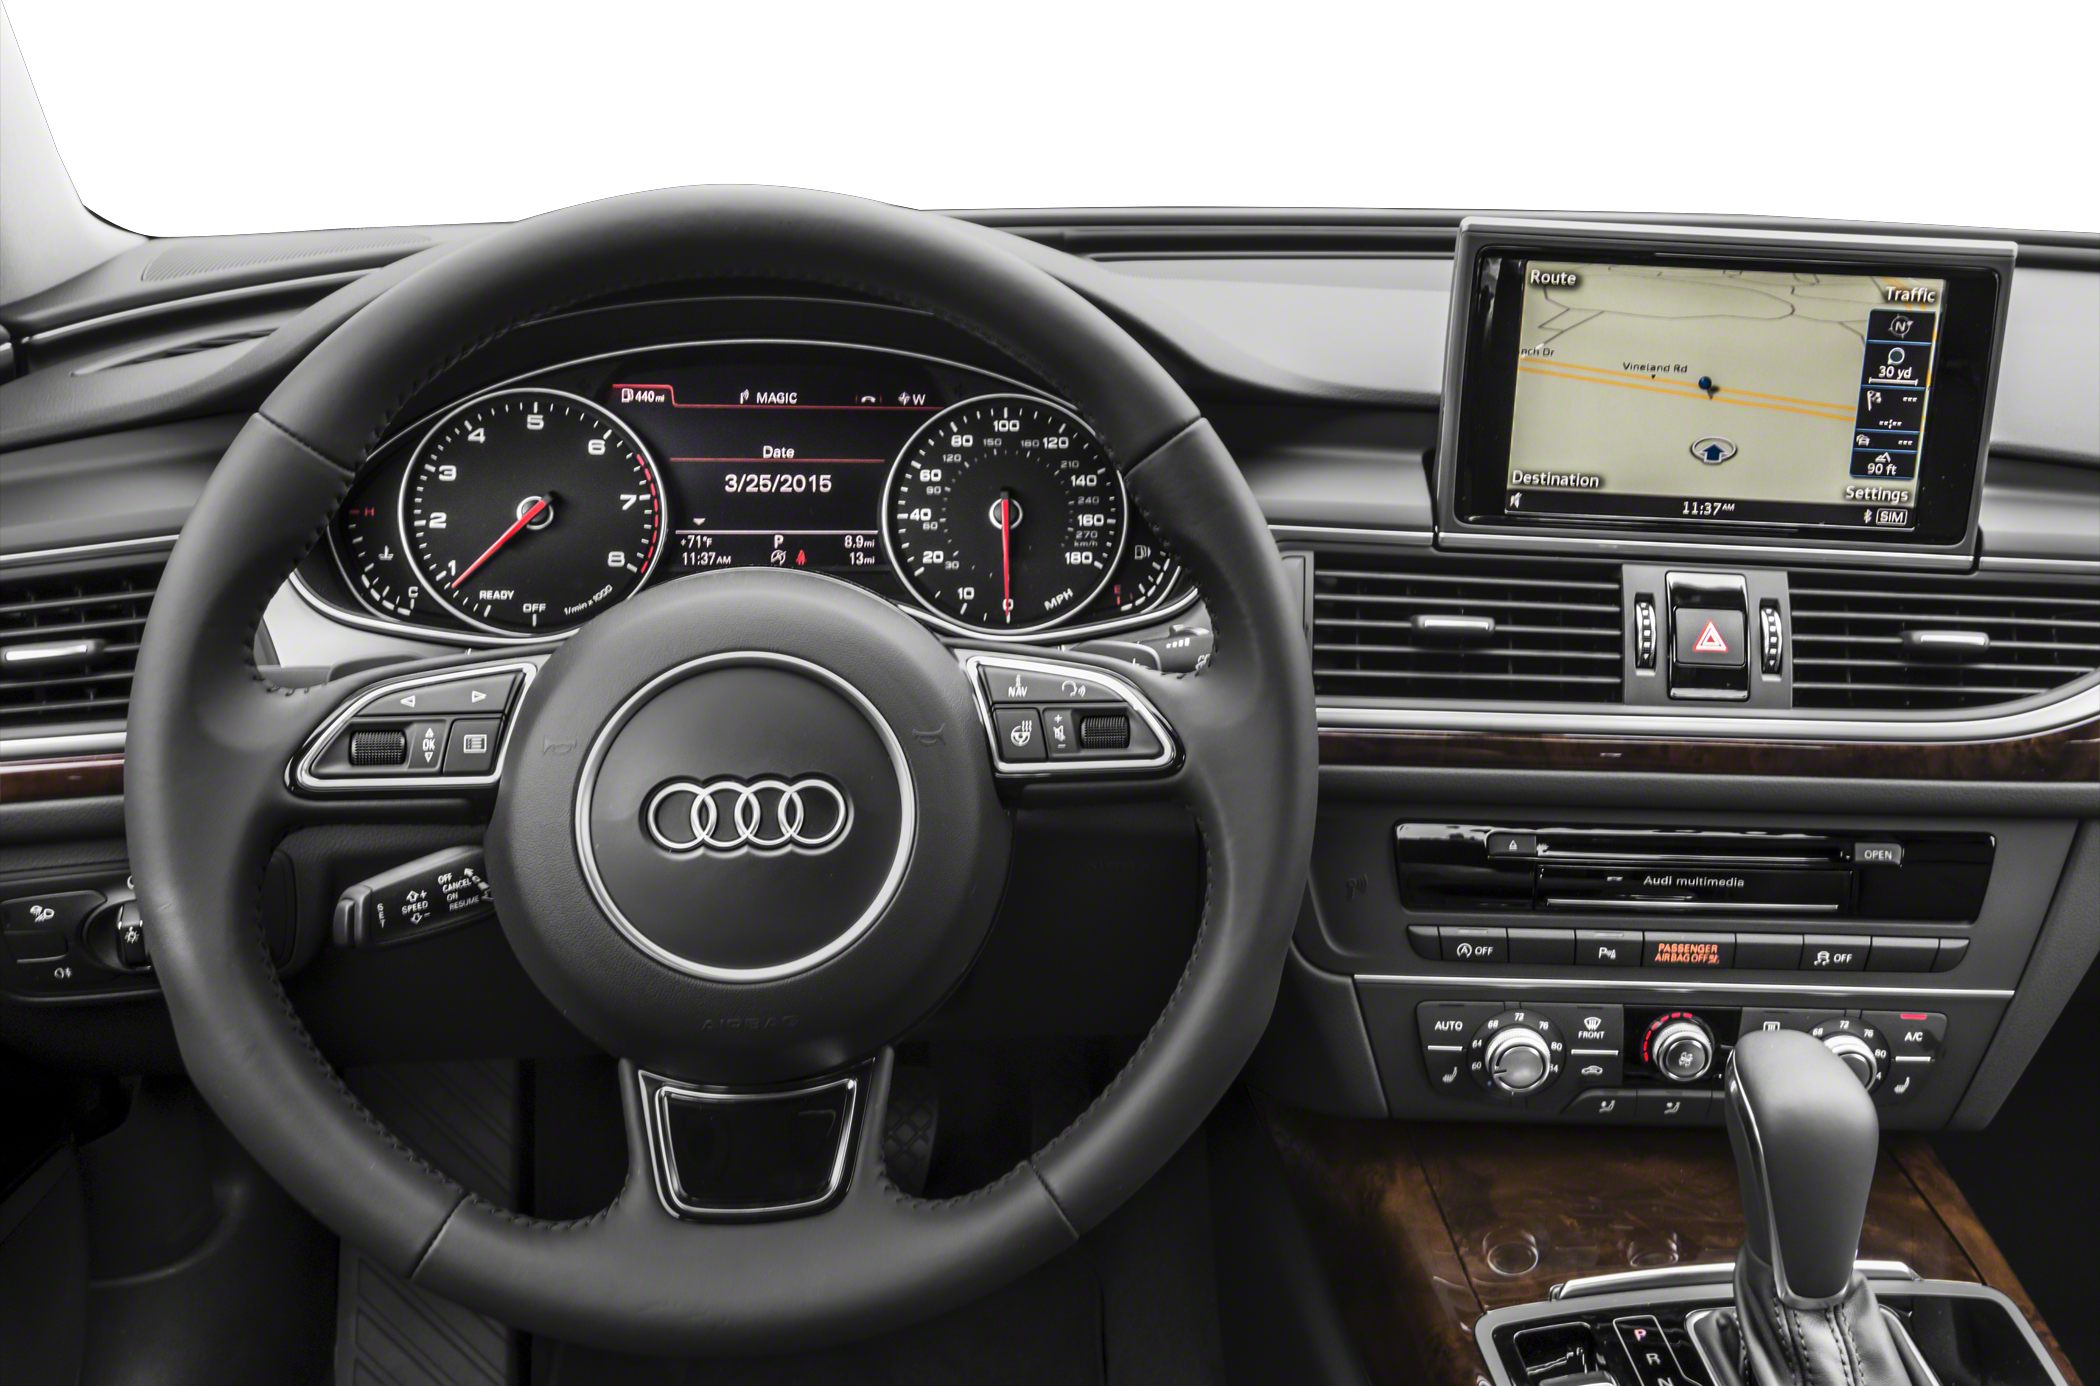 2017 Audi A6 Deals, Prices, Incentives & Leases, Overview - CarsDirect